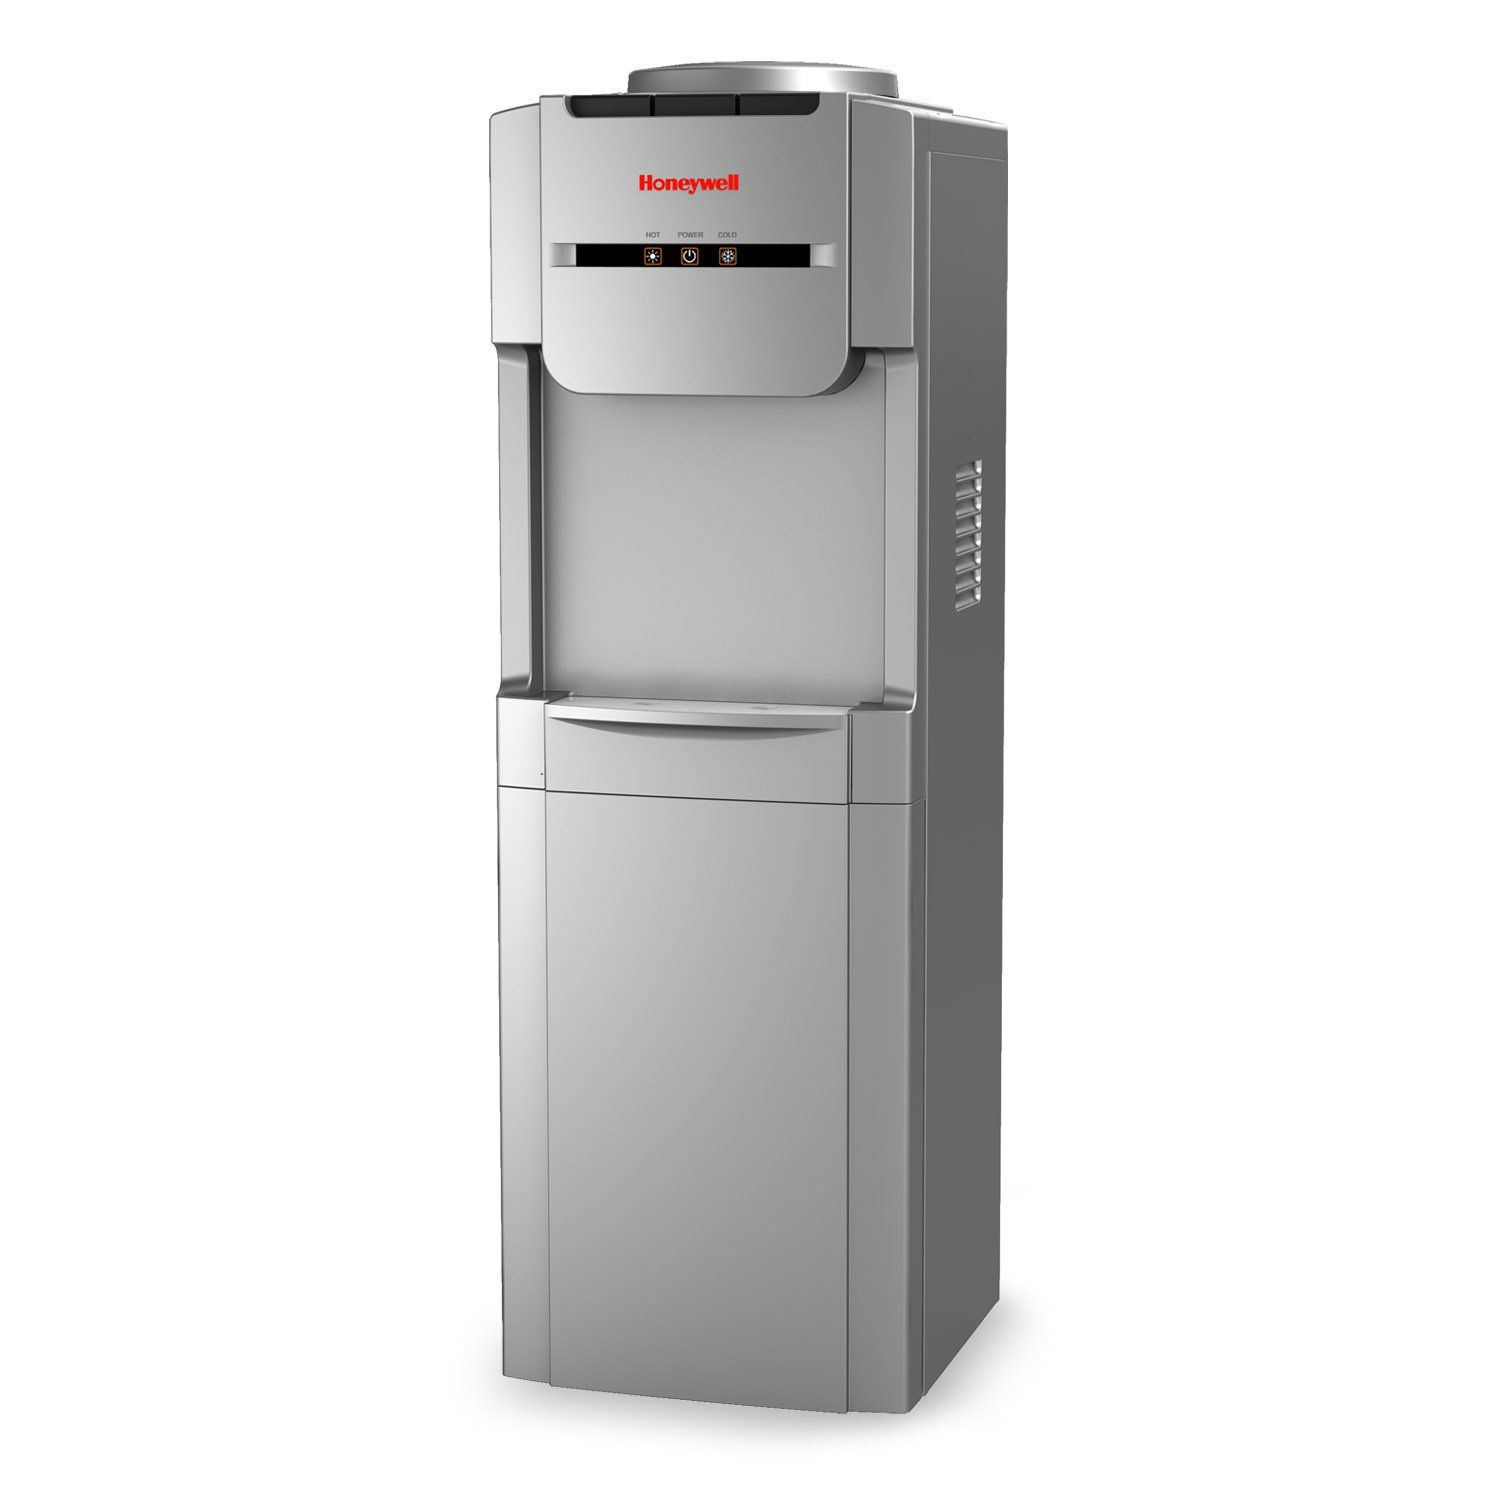 Honeywell HWB1073S 38-Inch Freestanding Hot, Room and Cold Water Dispenser with Stainless Steel Tank to help improve water taste, Back Handle for EASIER HANDLING and Thermostat Control, Silver by Honeywell